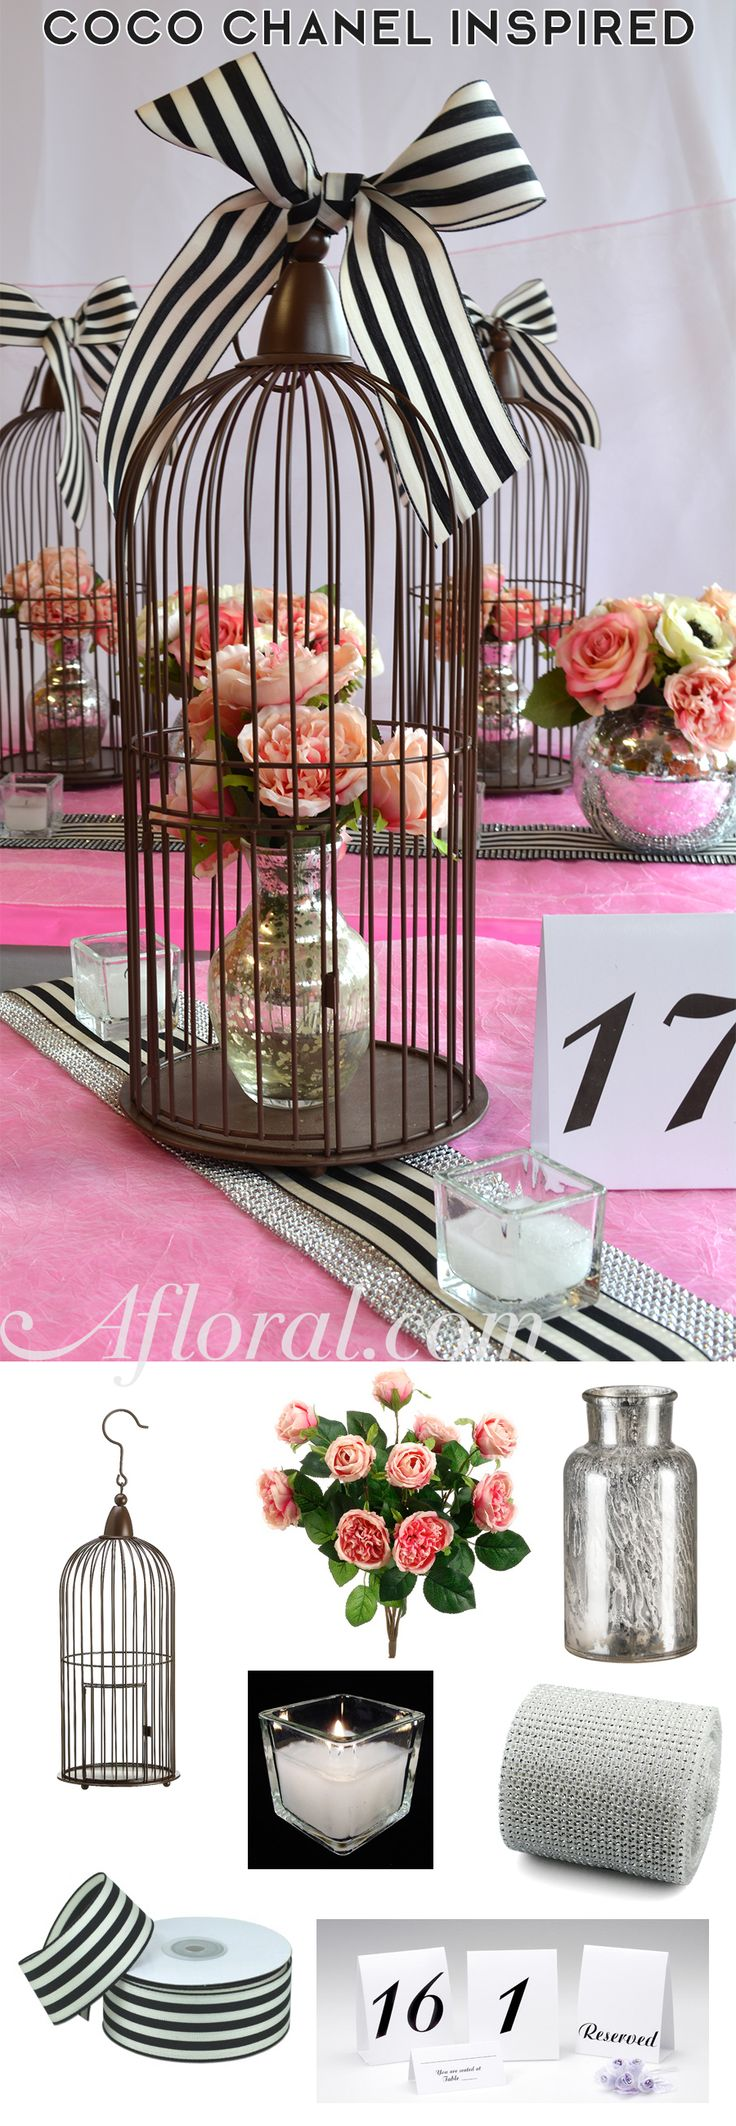 Wedding Decorations from Afloral.com. DIY this Black, White and Pink weddding decor.  Coco Chanel Inspired. #weddingdecorations